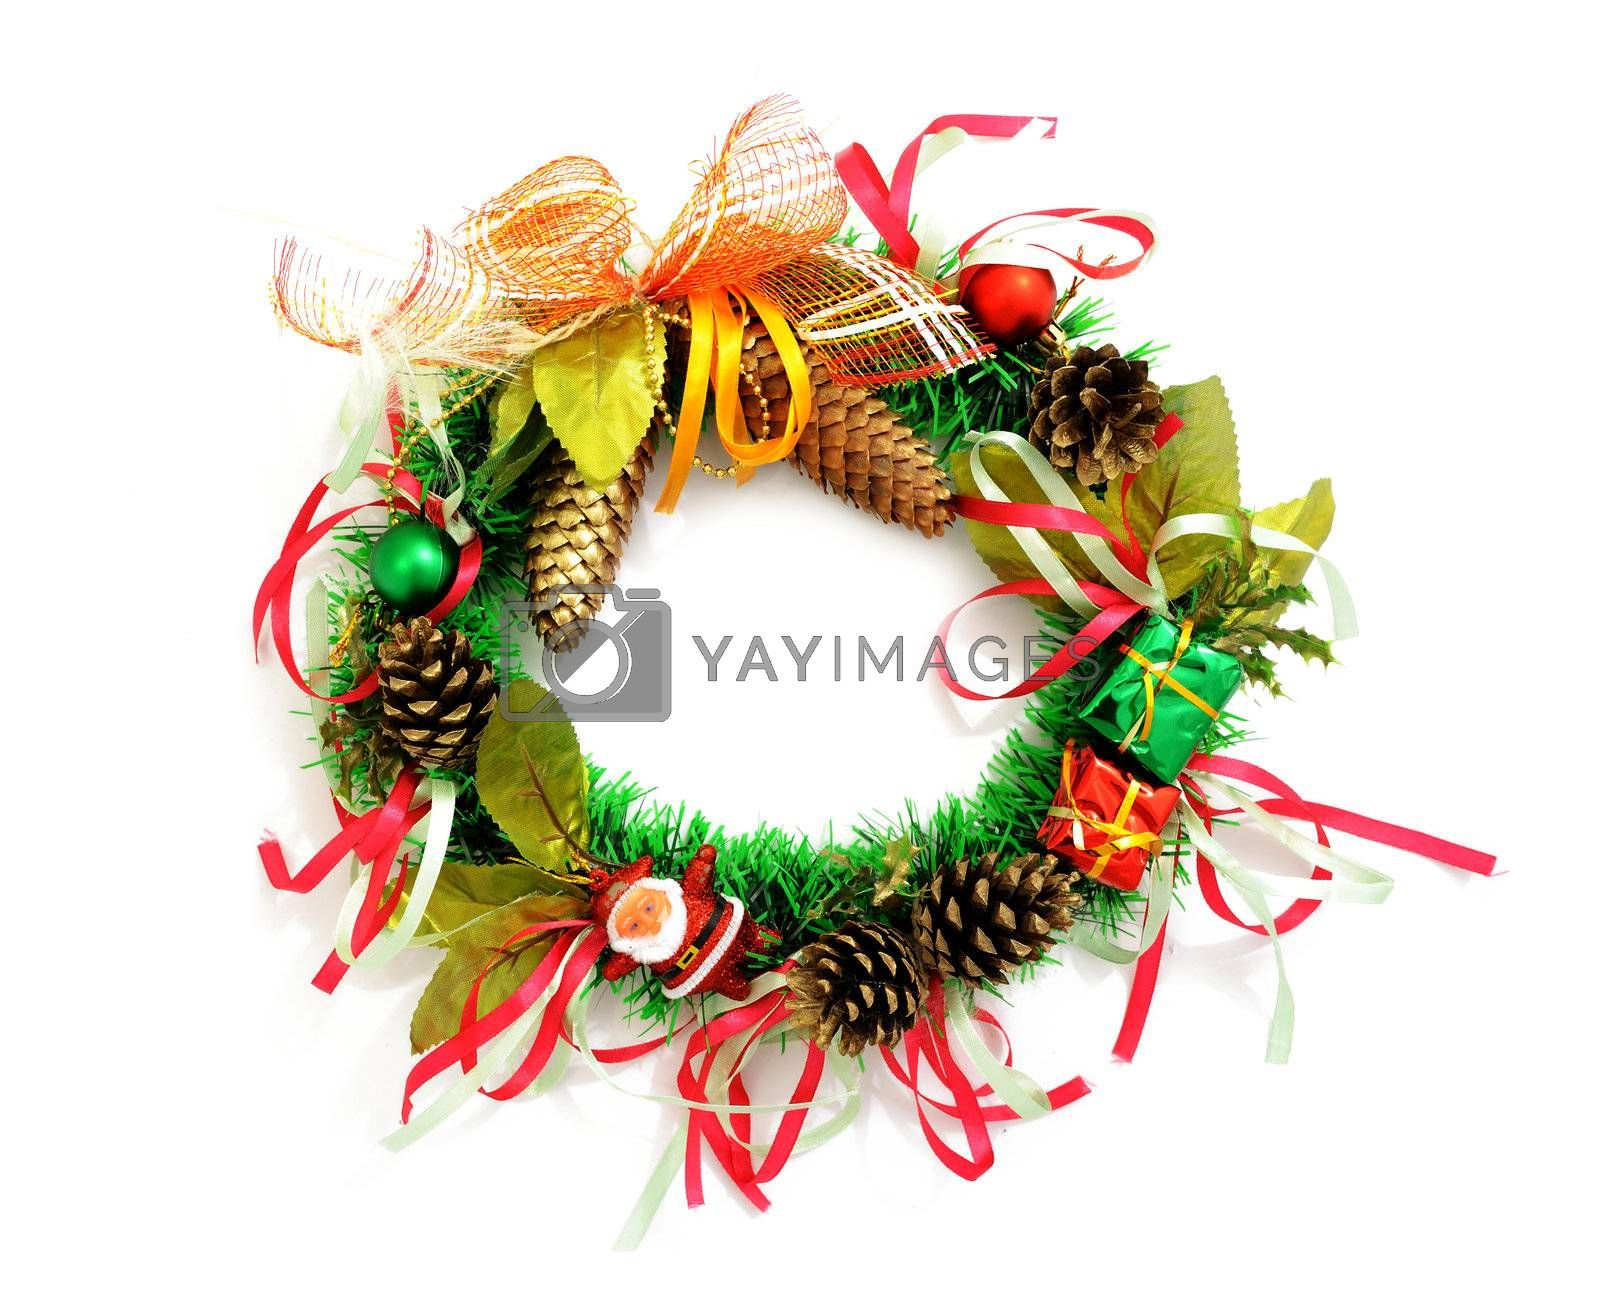 Images of Christmas wreath on white background